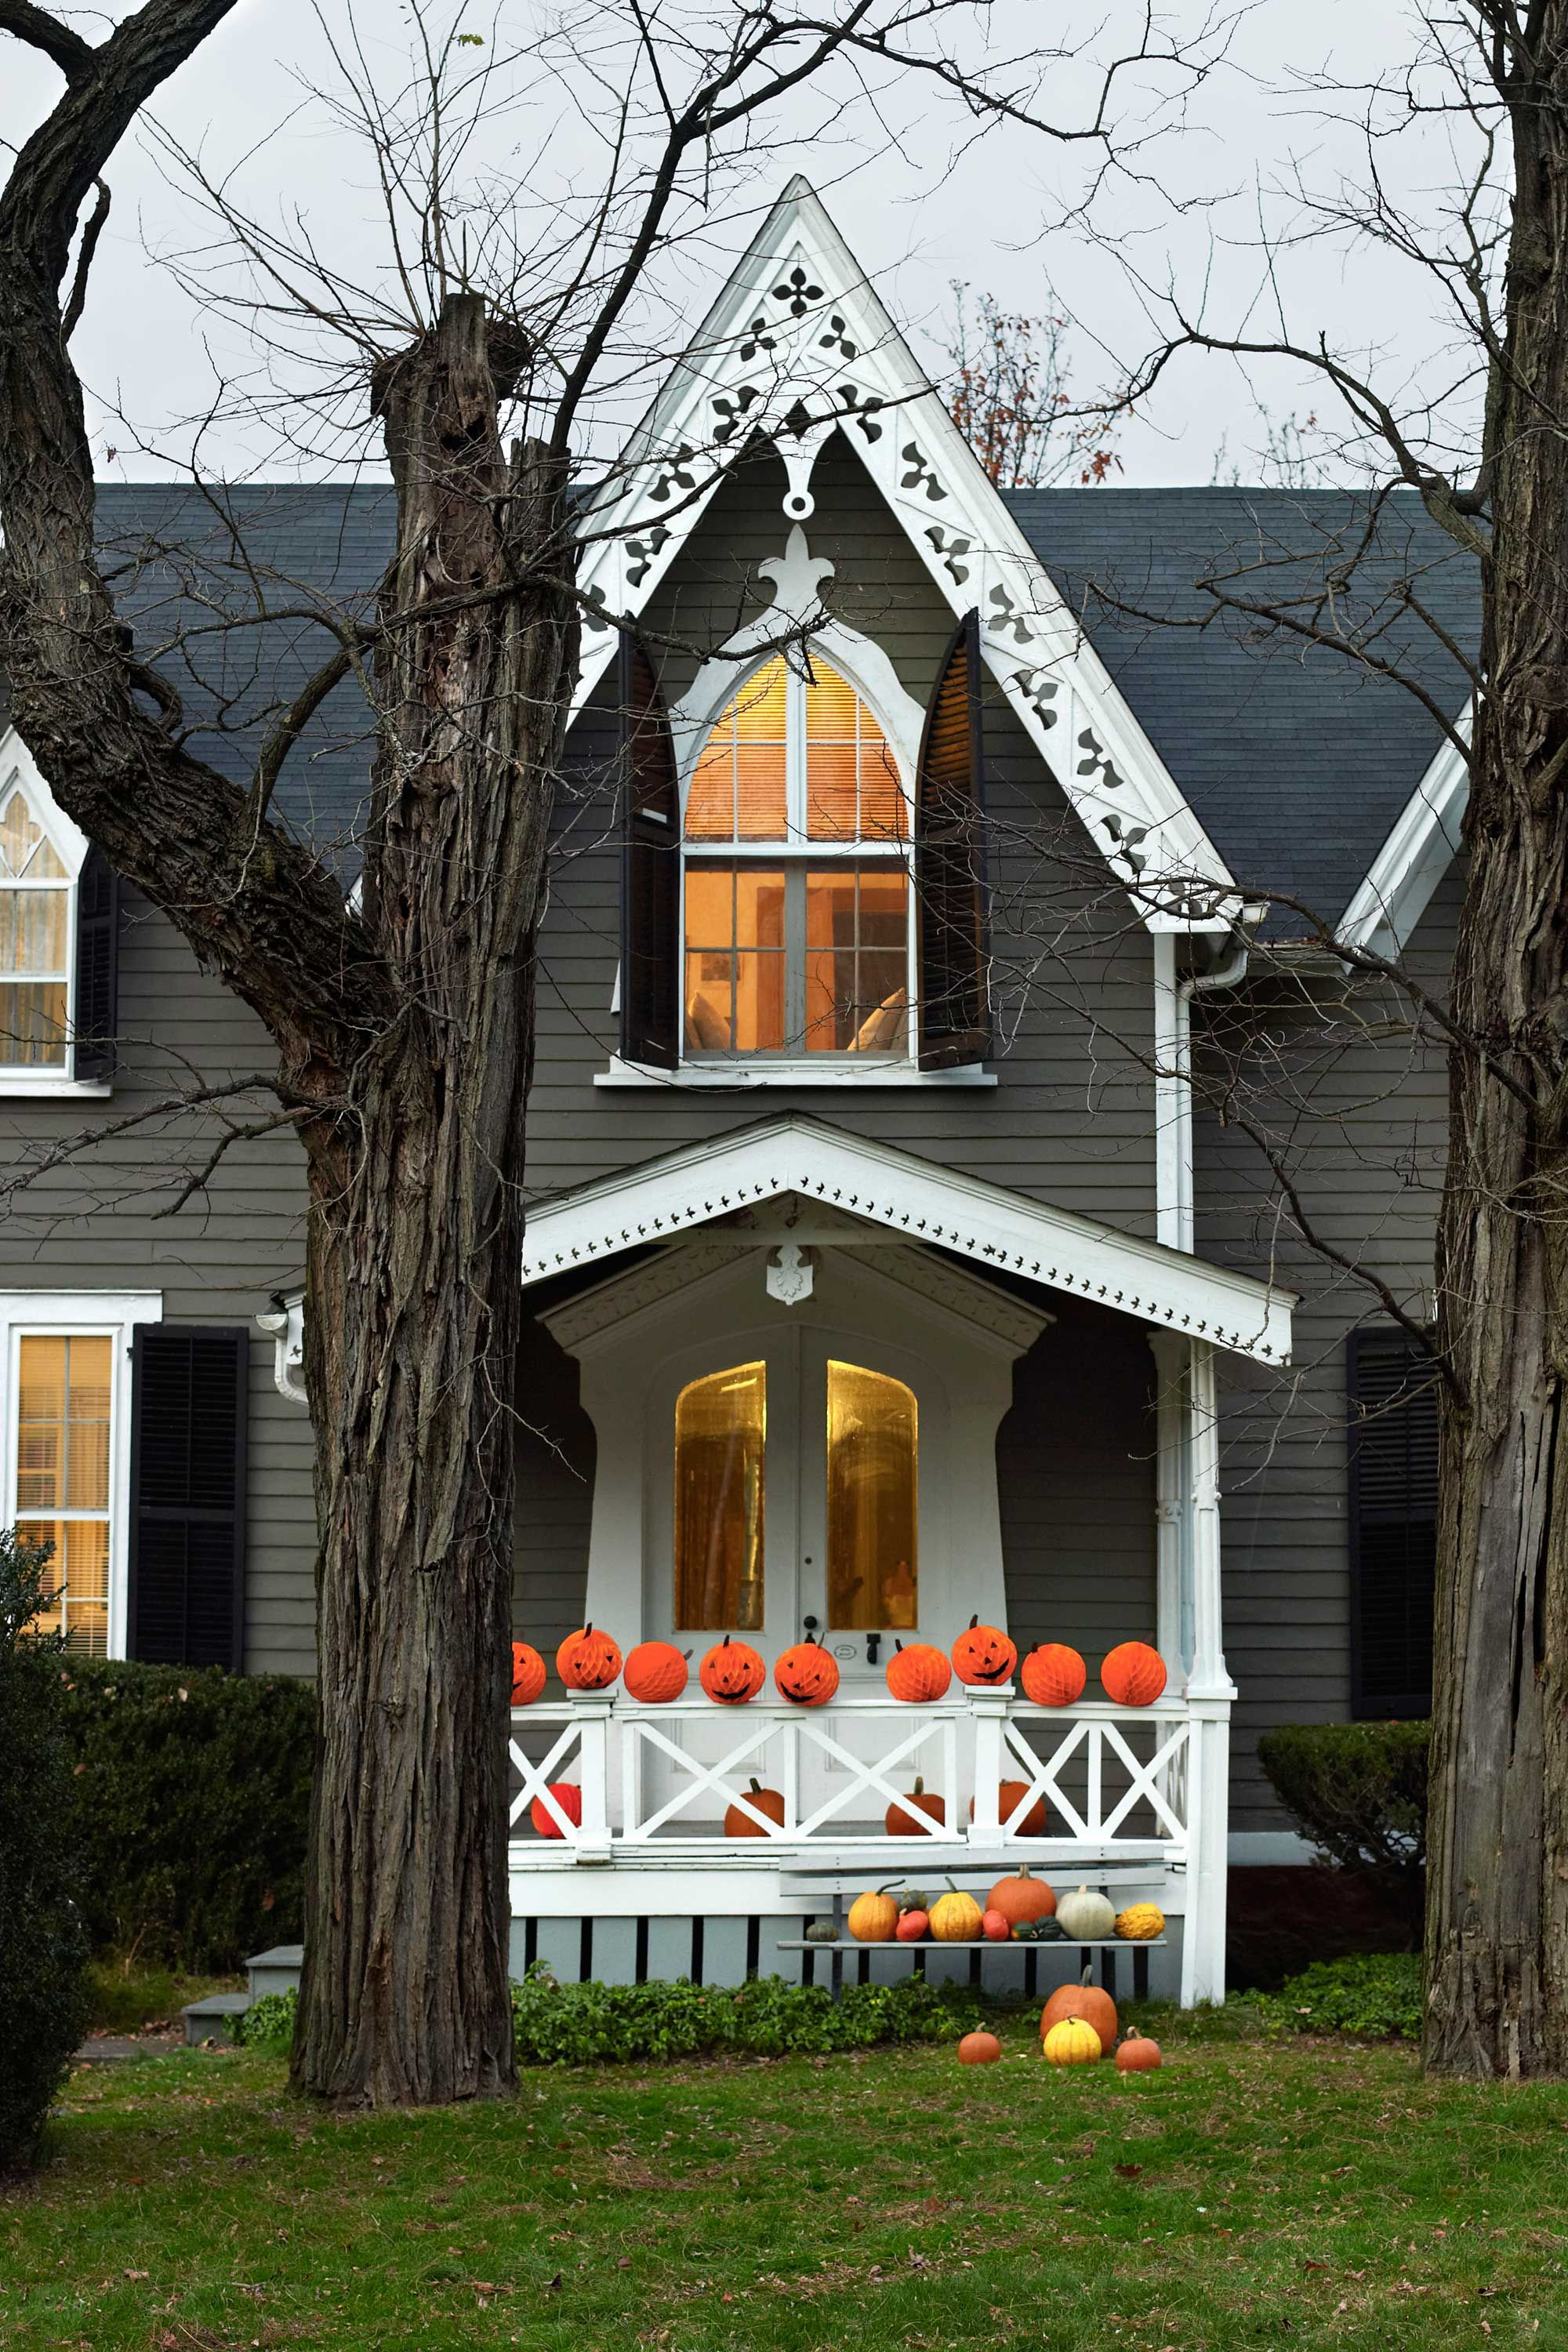 50 Best Outdoor Halloween Decorations - Easy Halloween Yard and